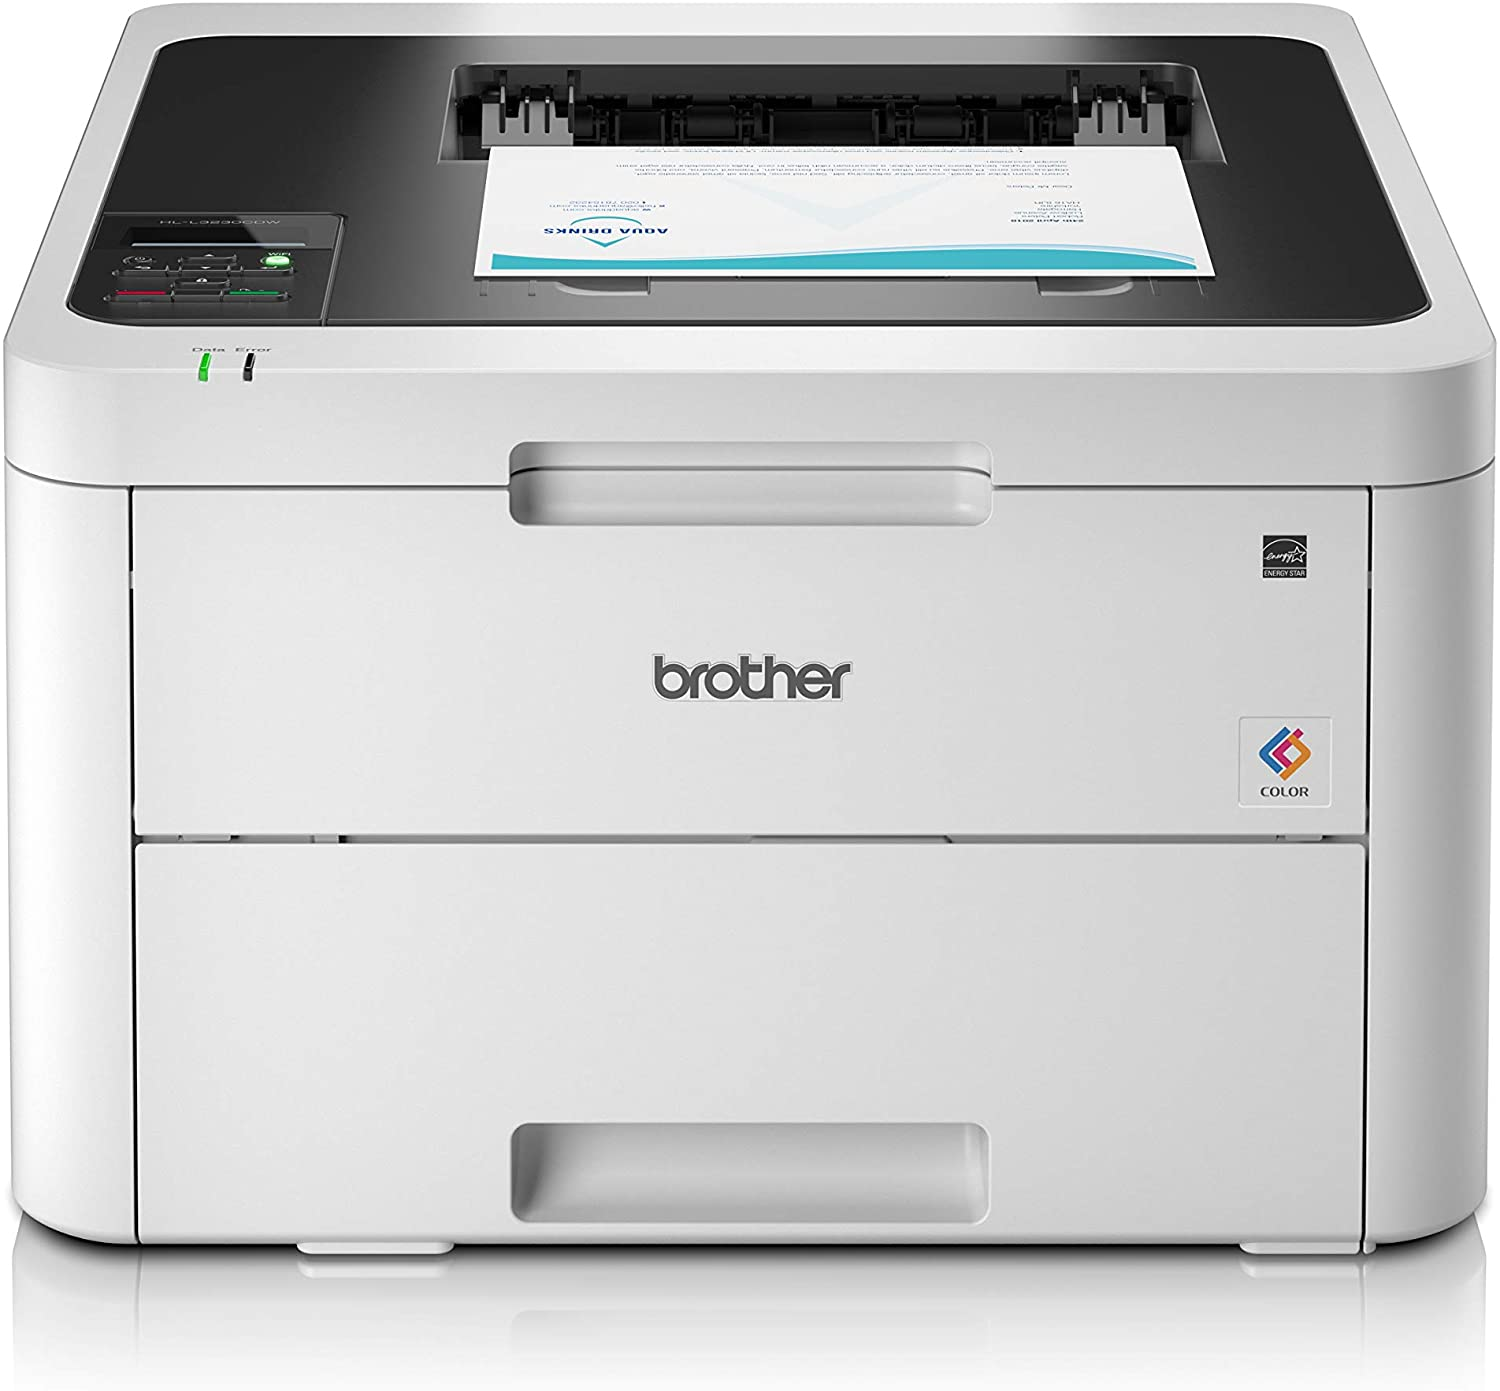 Brother HL-L3230CDW Colour Laser Printer - Single Function, Wireless, USB 2.0, 2 Sided Printing, A4 Printer, Small Office, Home Office Best Laser Printer